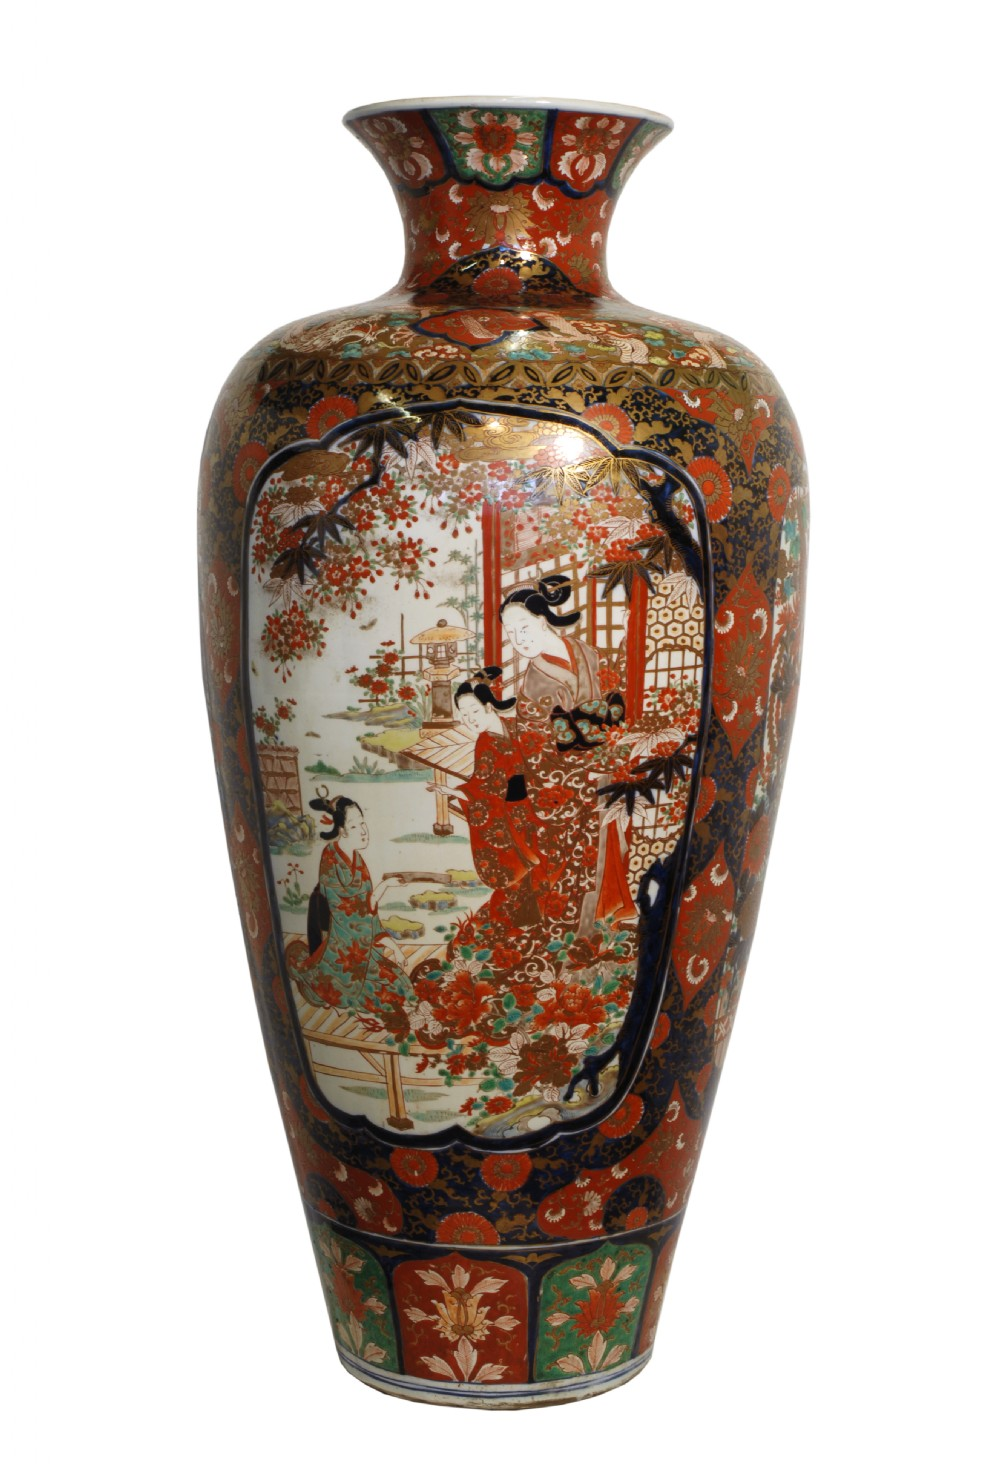 Huge 19th century japanese imari floor vase 298258 huge 19th century japanese imari floor vase reviewsmspy